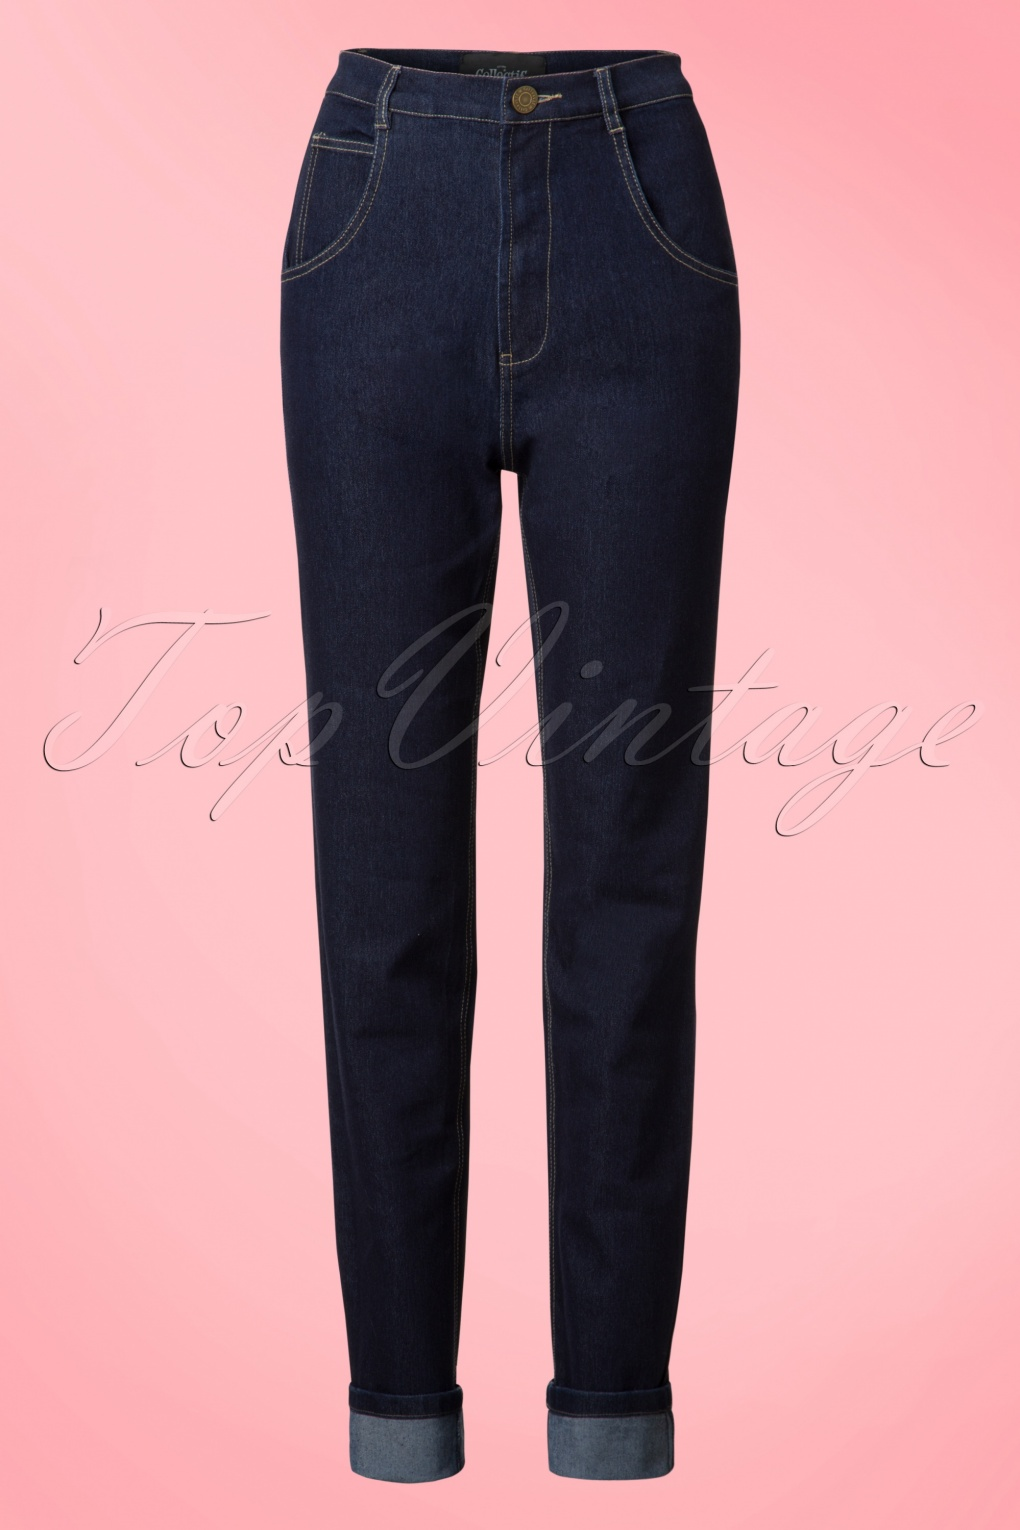 Vintage High Waisted Trousers, Sailor Pants, Jeans 50s Monroe Jeans in Denim Blue £45.40 AT vintagedancer.com